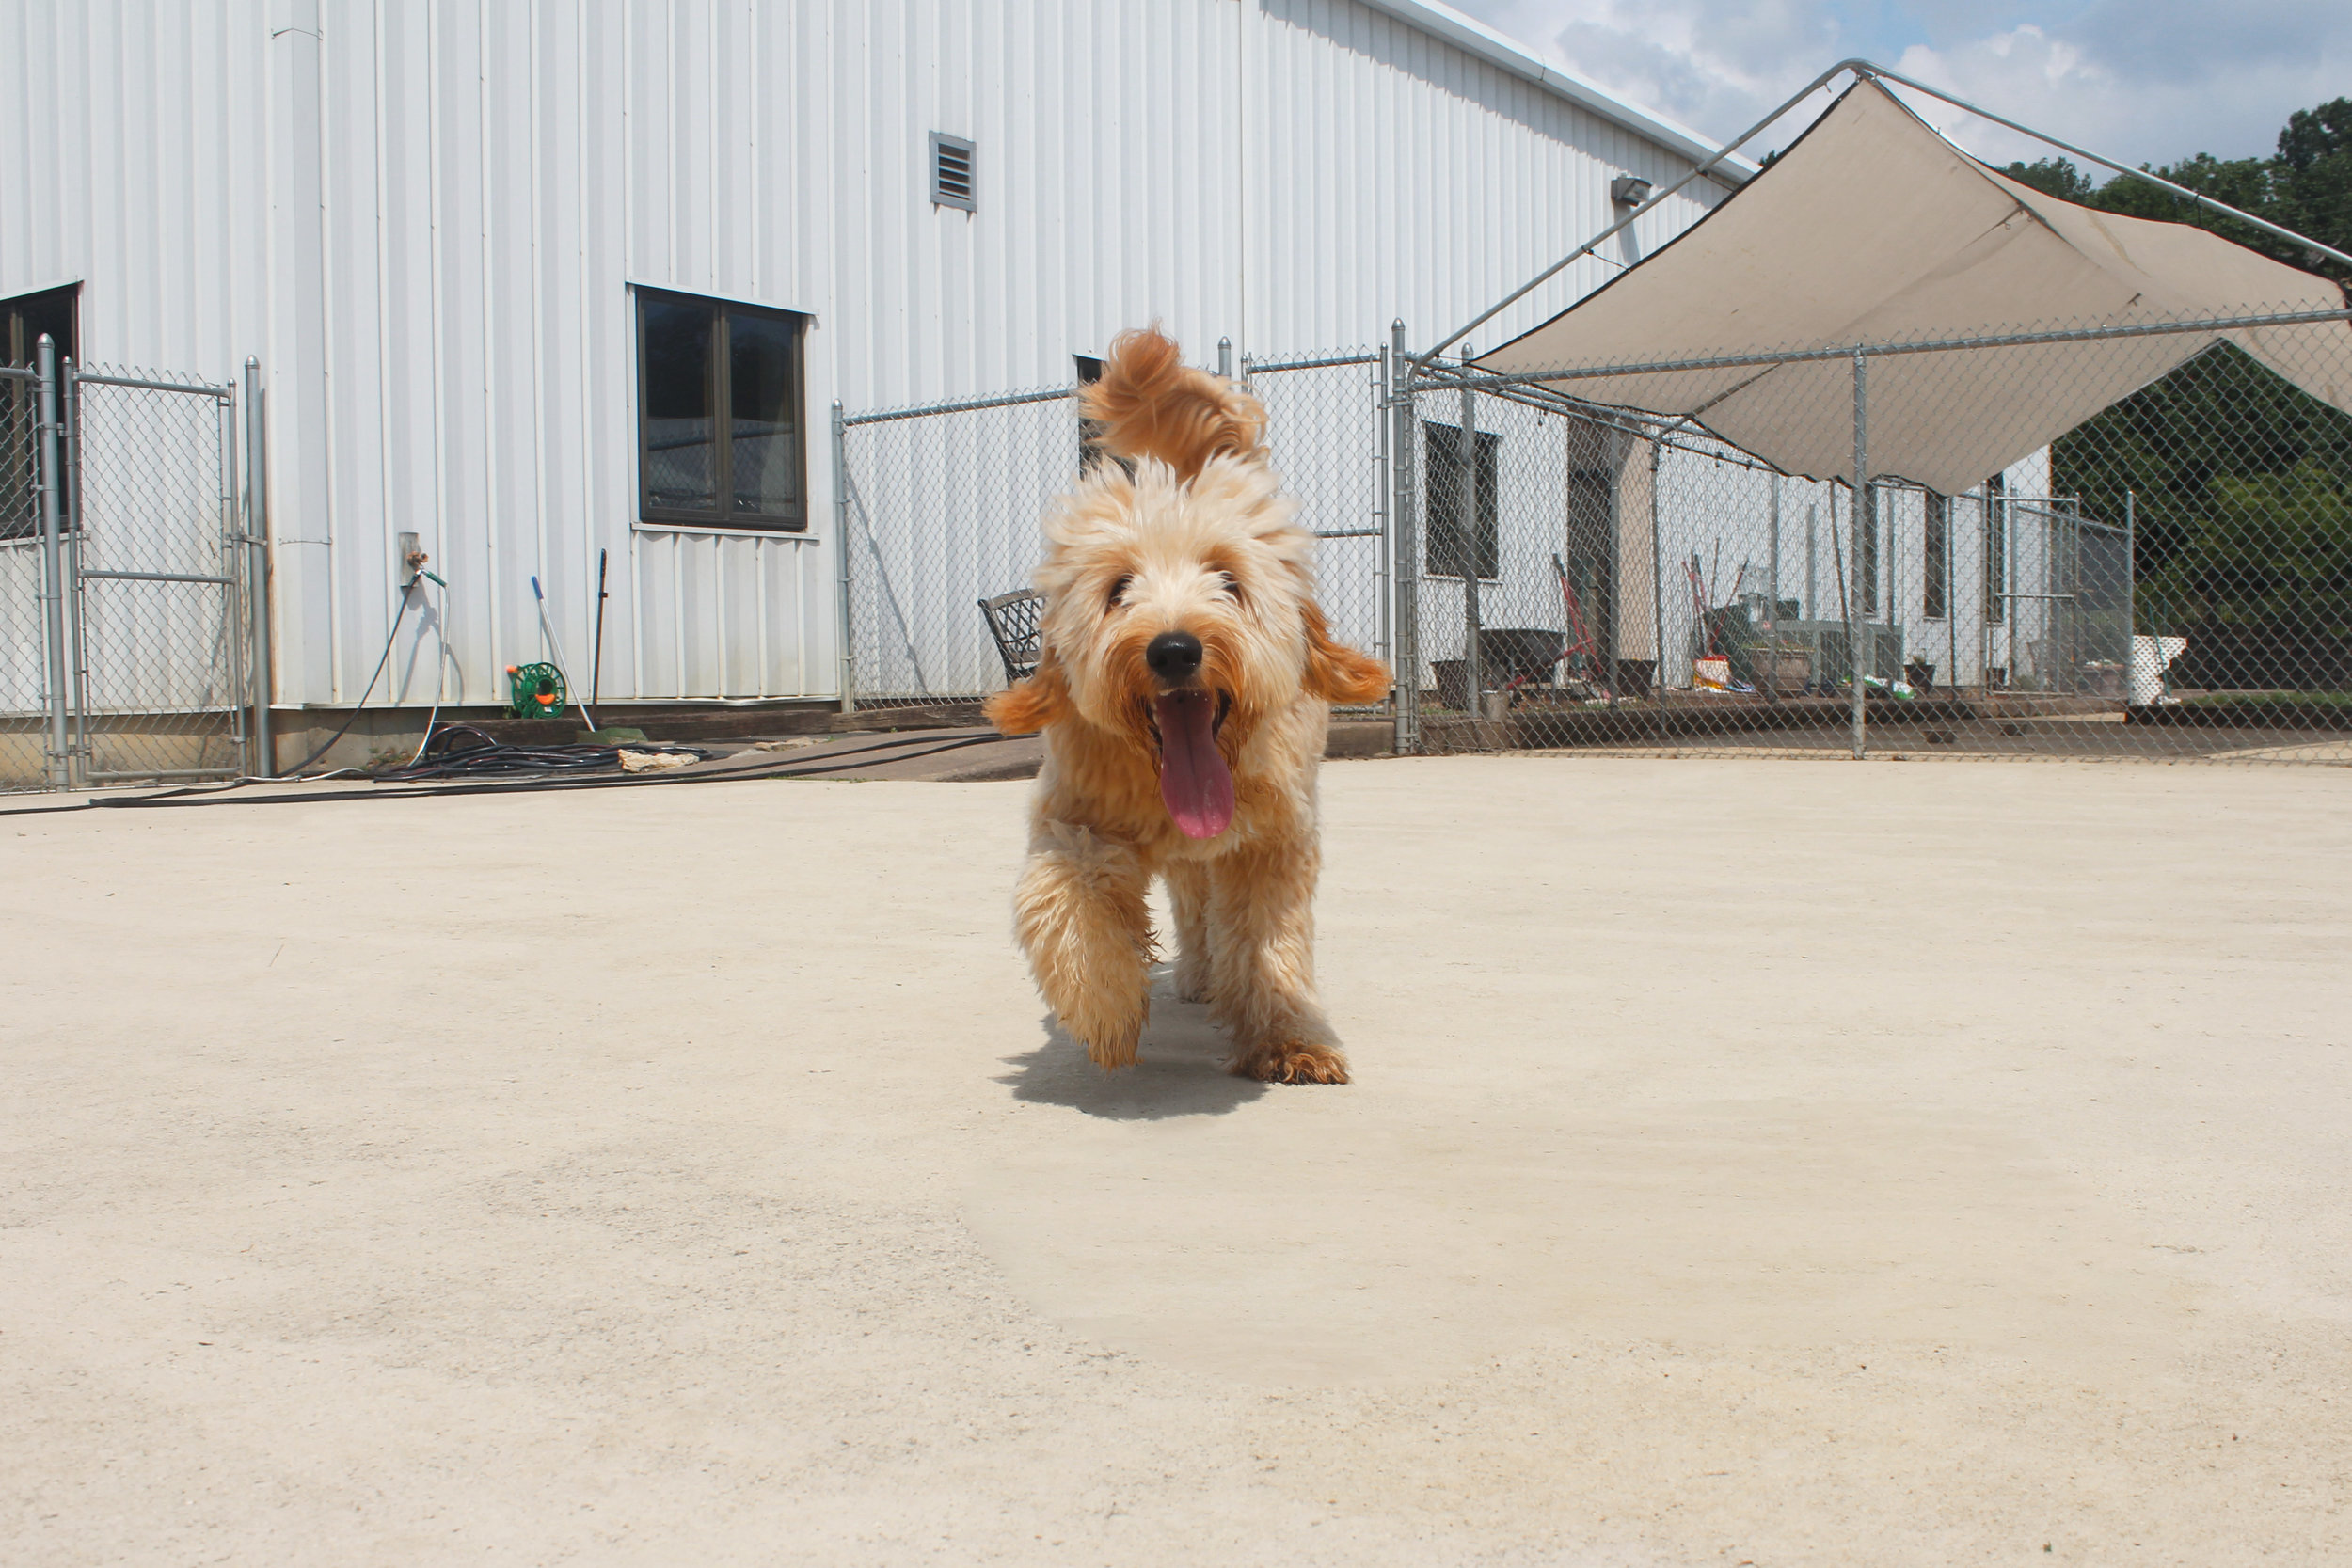 Tiger is just happy, plain and simple. When he steps through the door at Pet Nation Lodge for a day of daycare every single staff member is magnetically drawn to his pure joy! Wherever he goes sunshine follows.